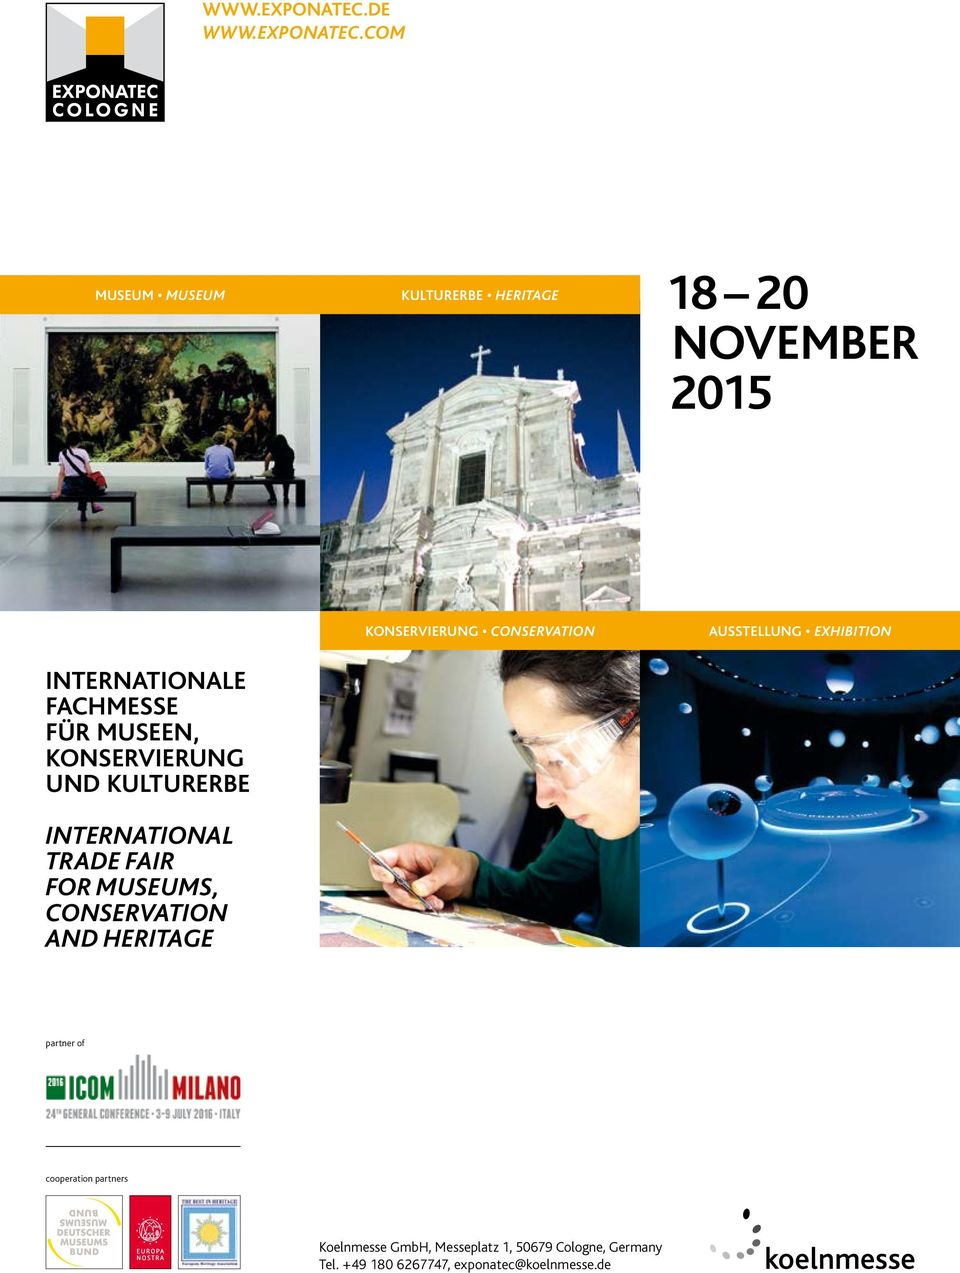 KONSERVIERUNG UND KULTURERBE INTERNATIONAL TRADE FAIR FOR MUSEUMS, CONSERVATION AND HERITAGE